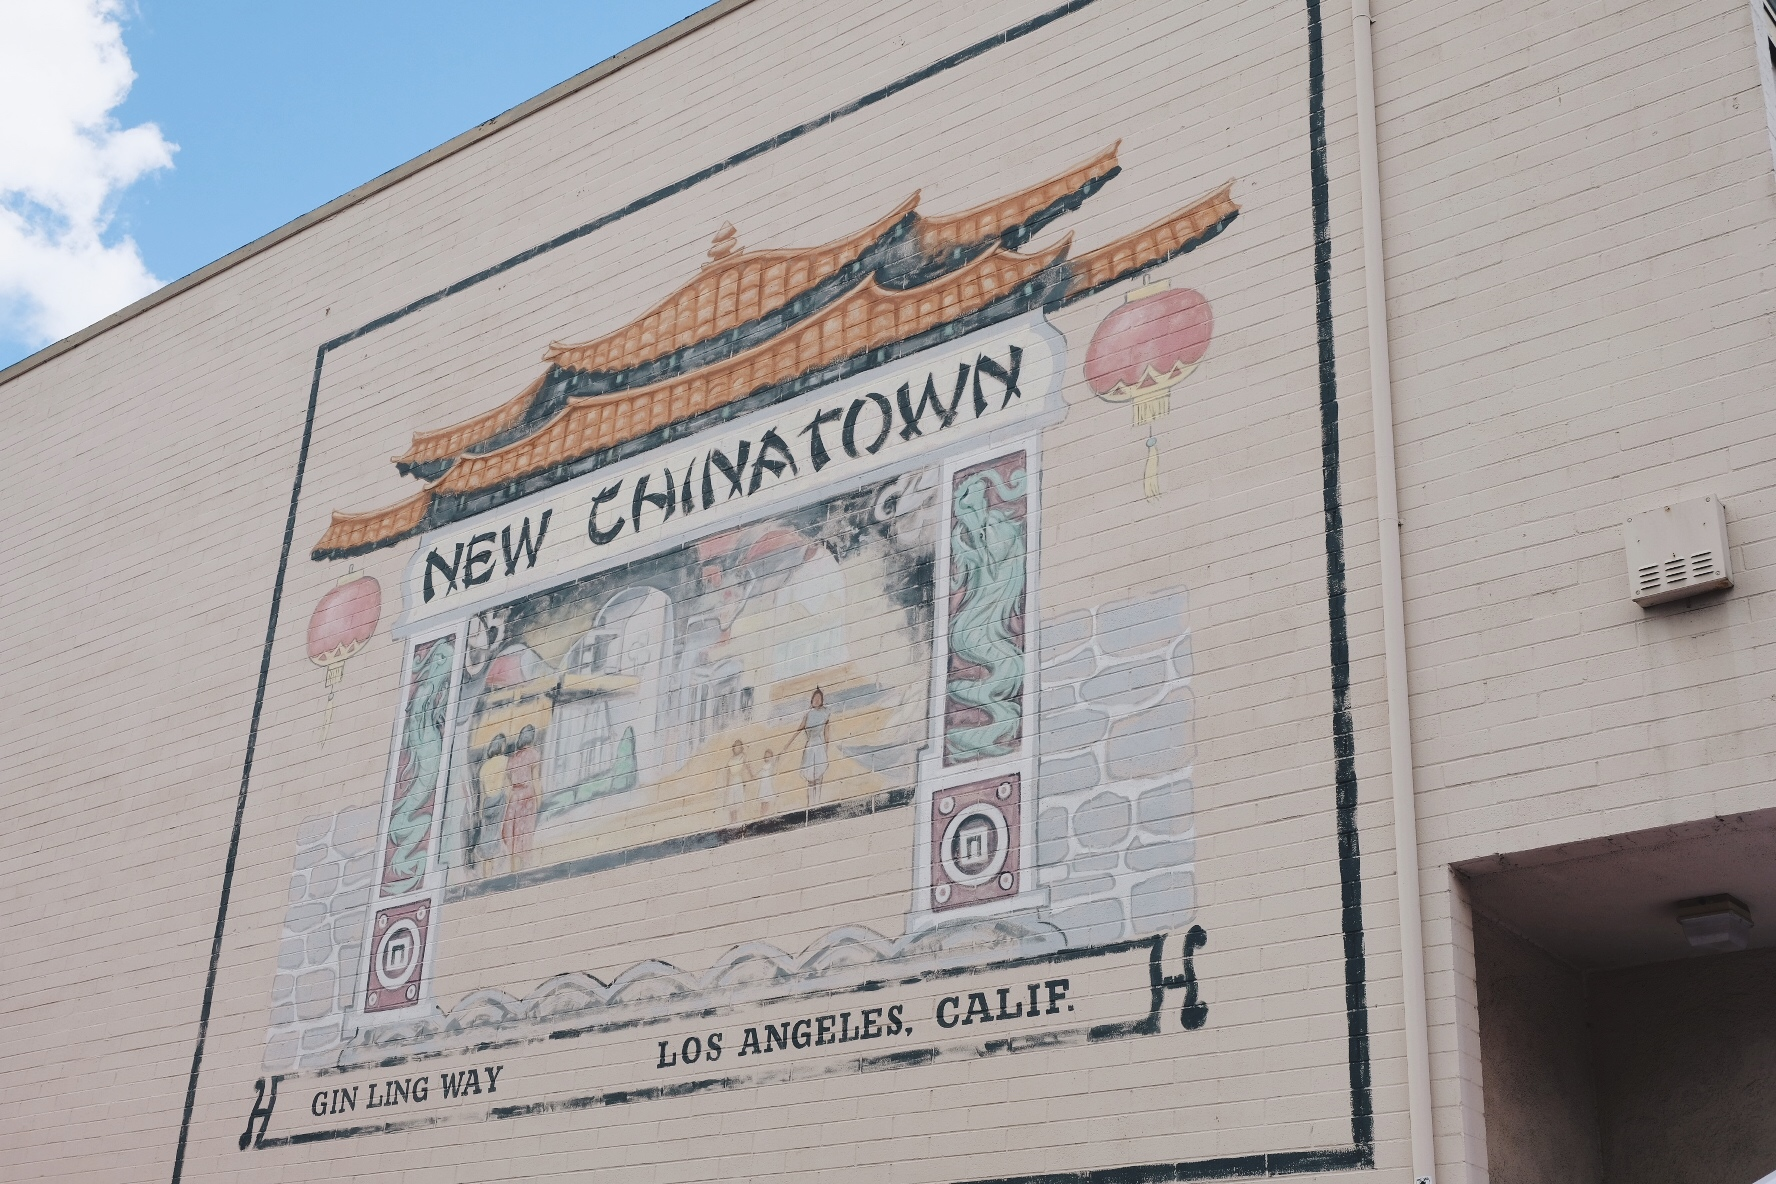 Painted mural in New Chinatown